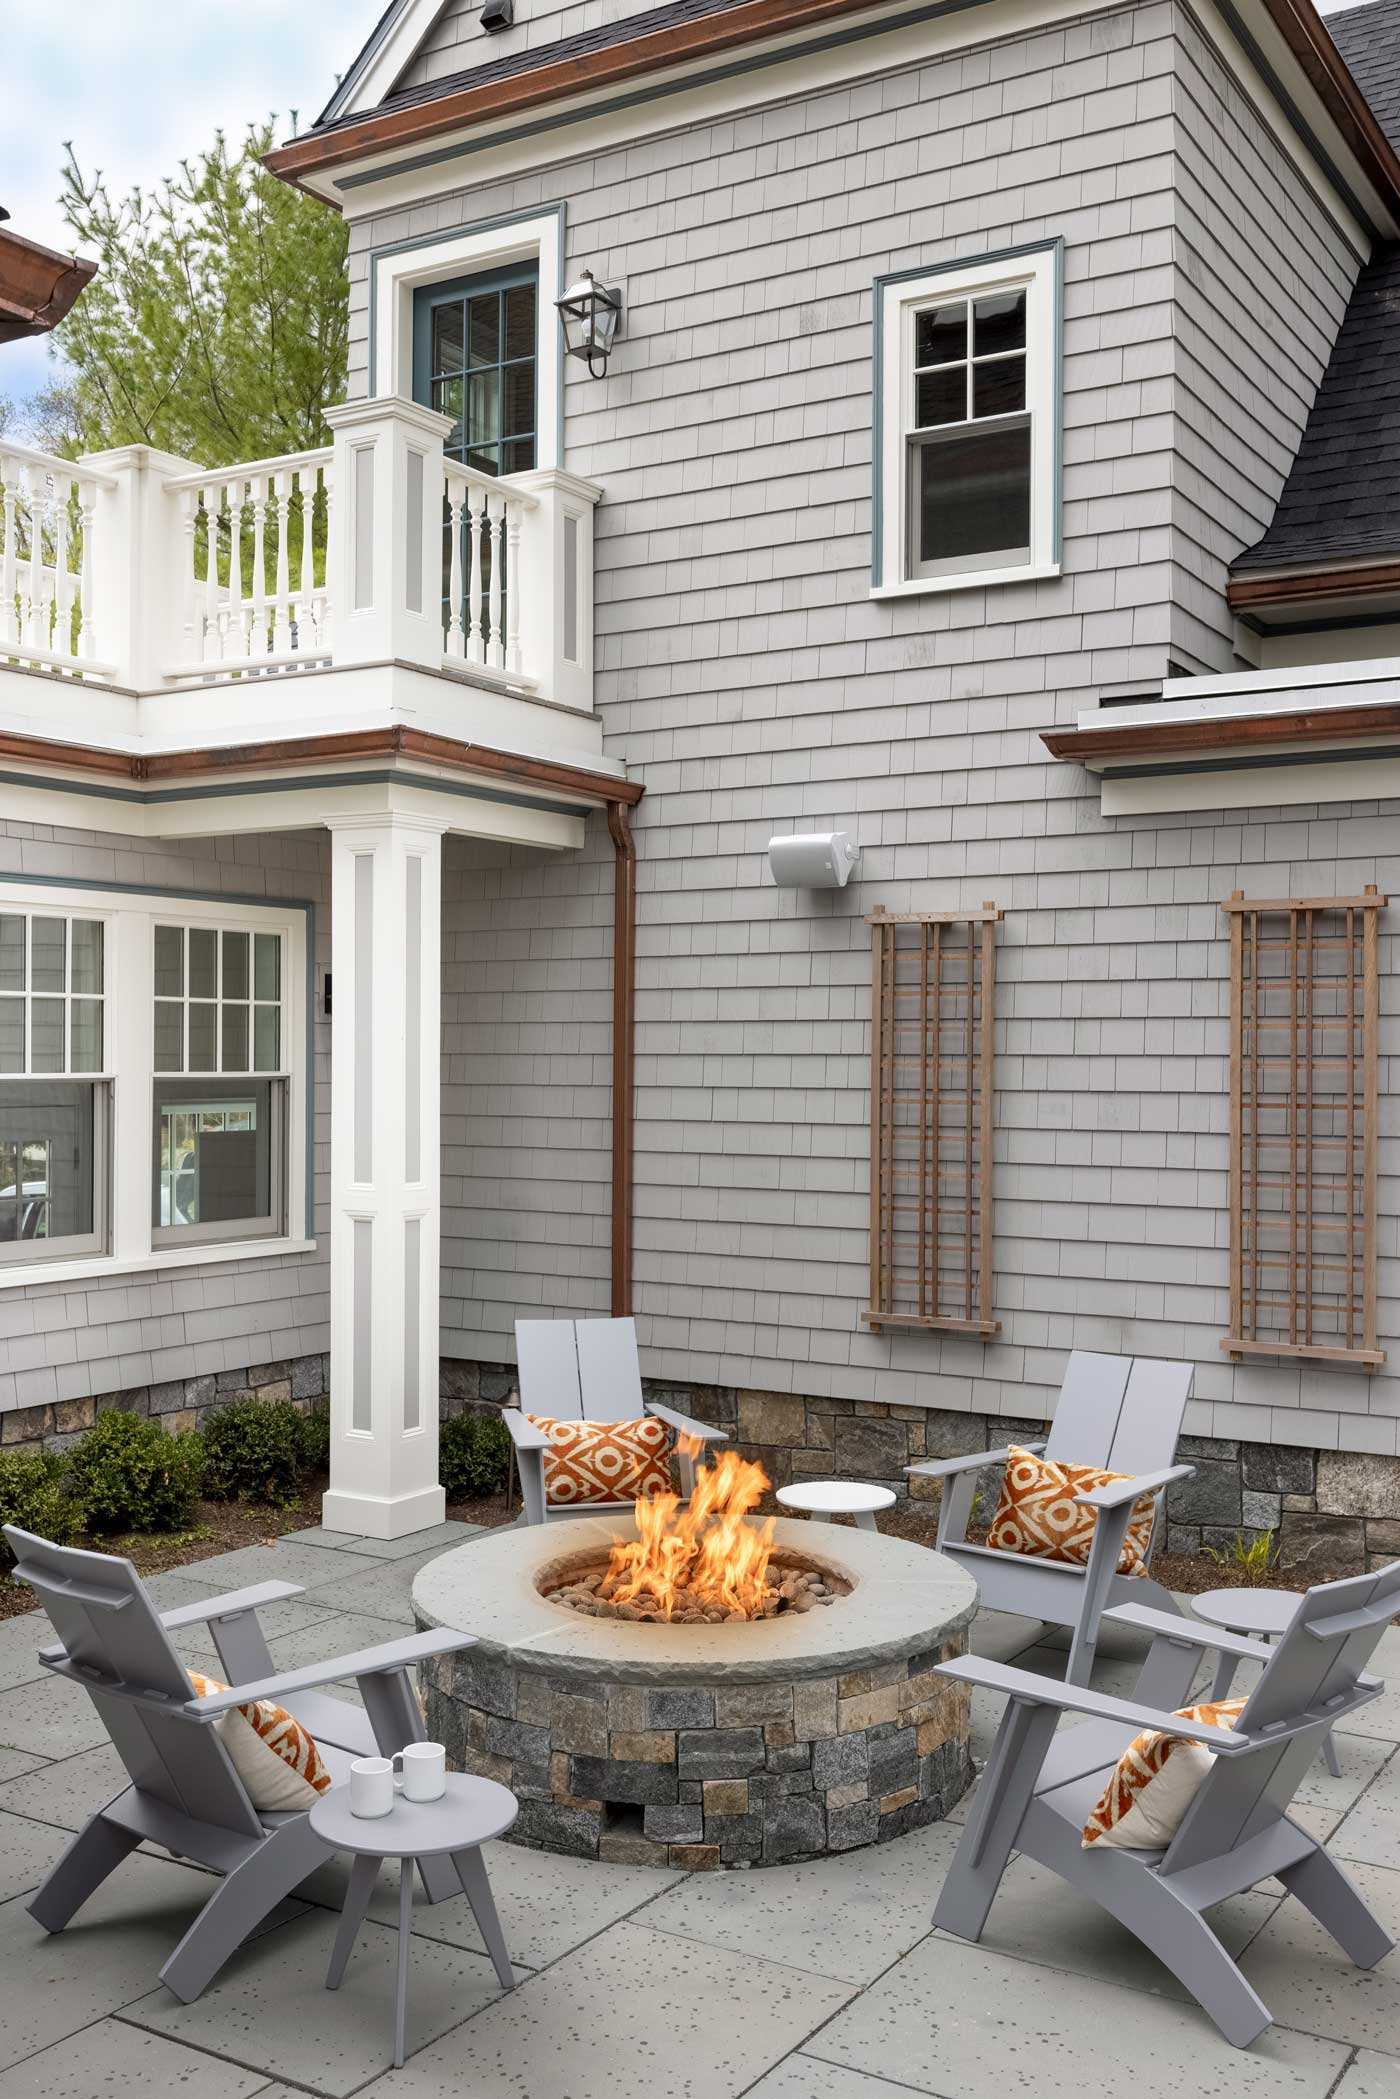 Outdoor firepit with